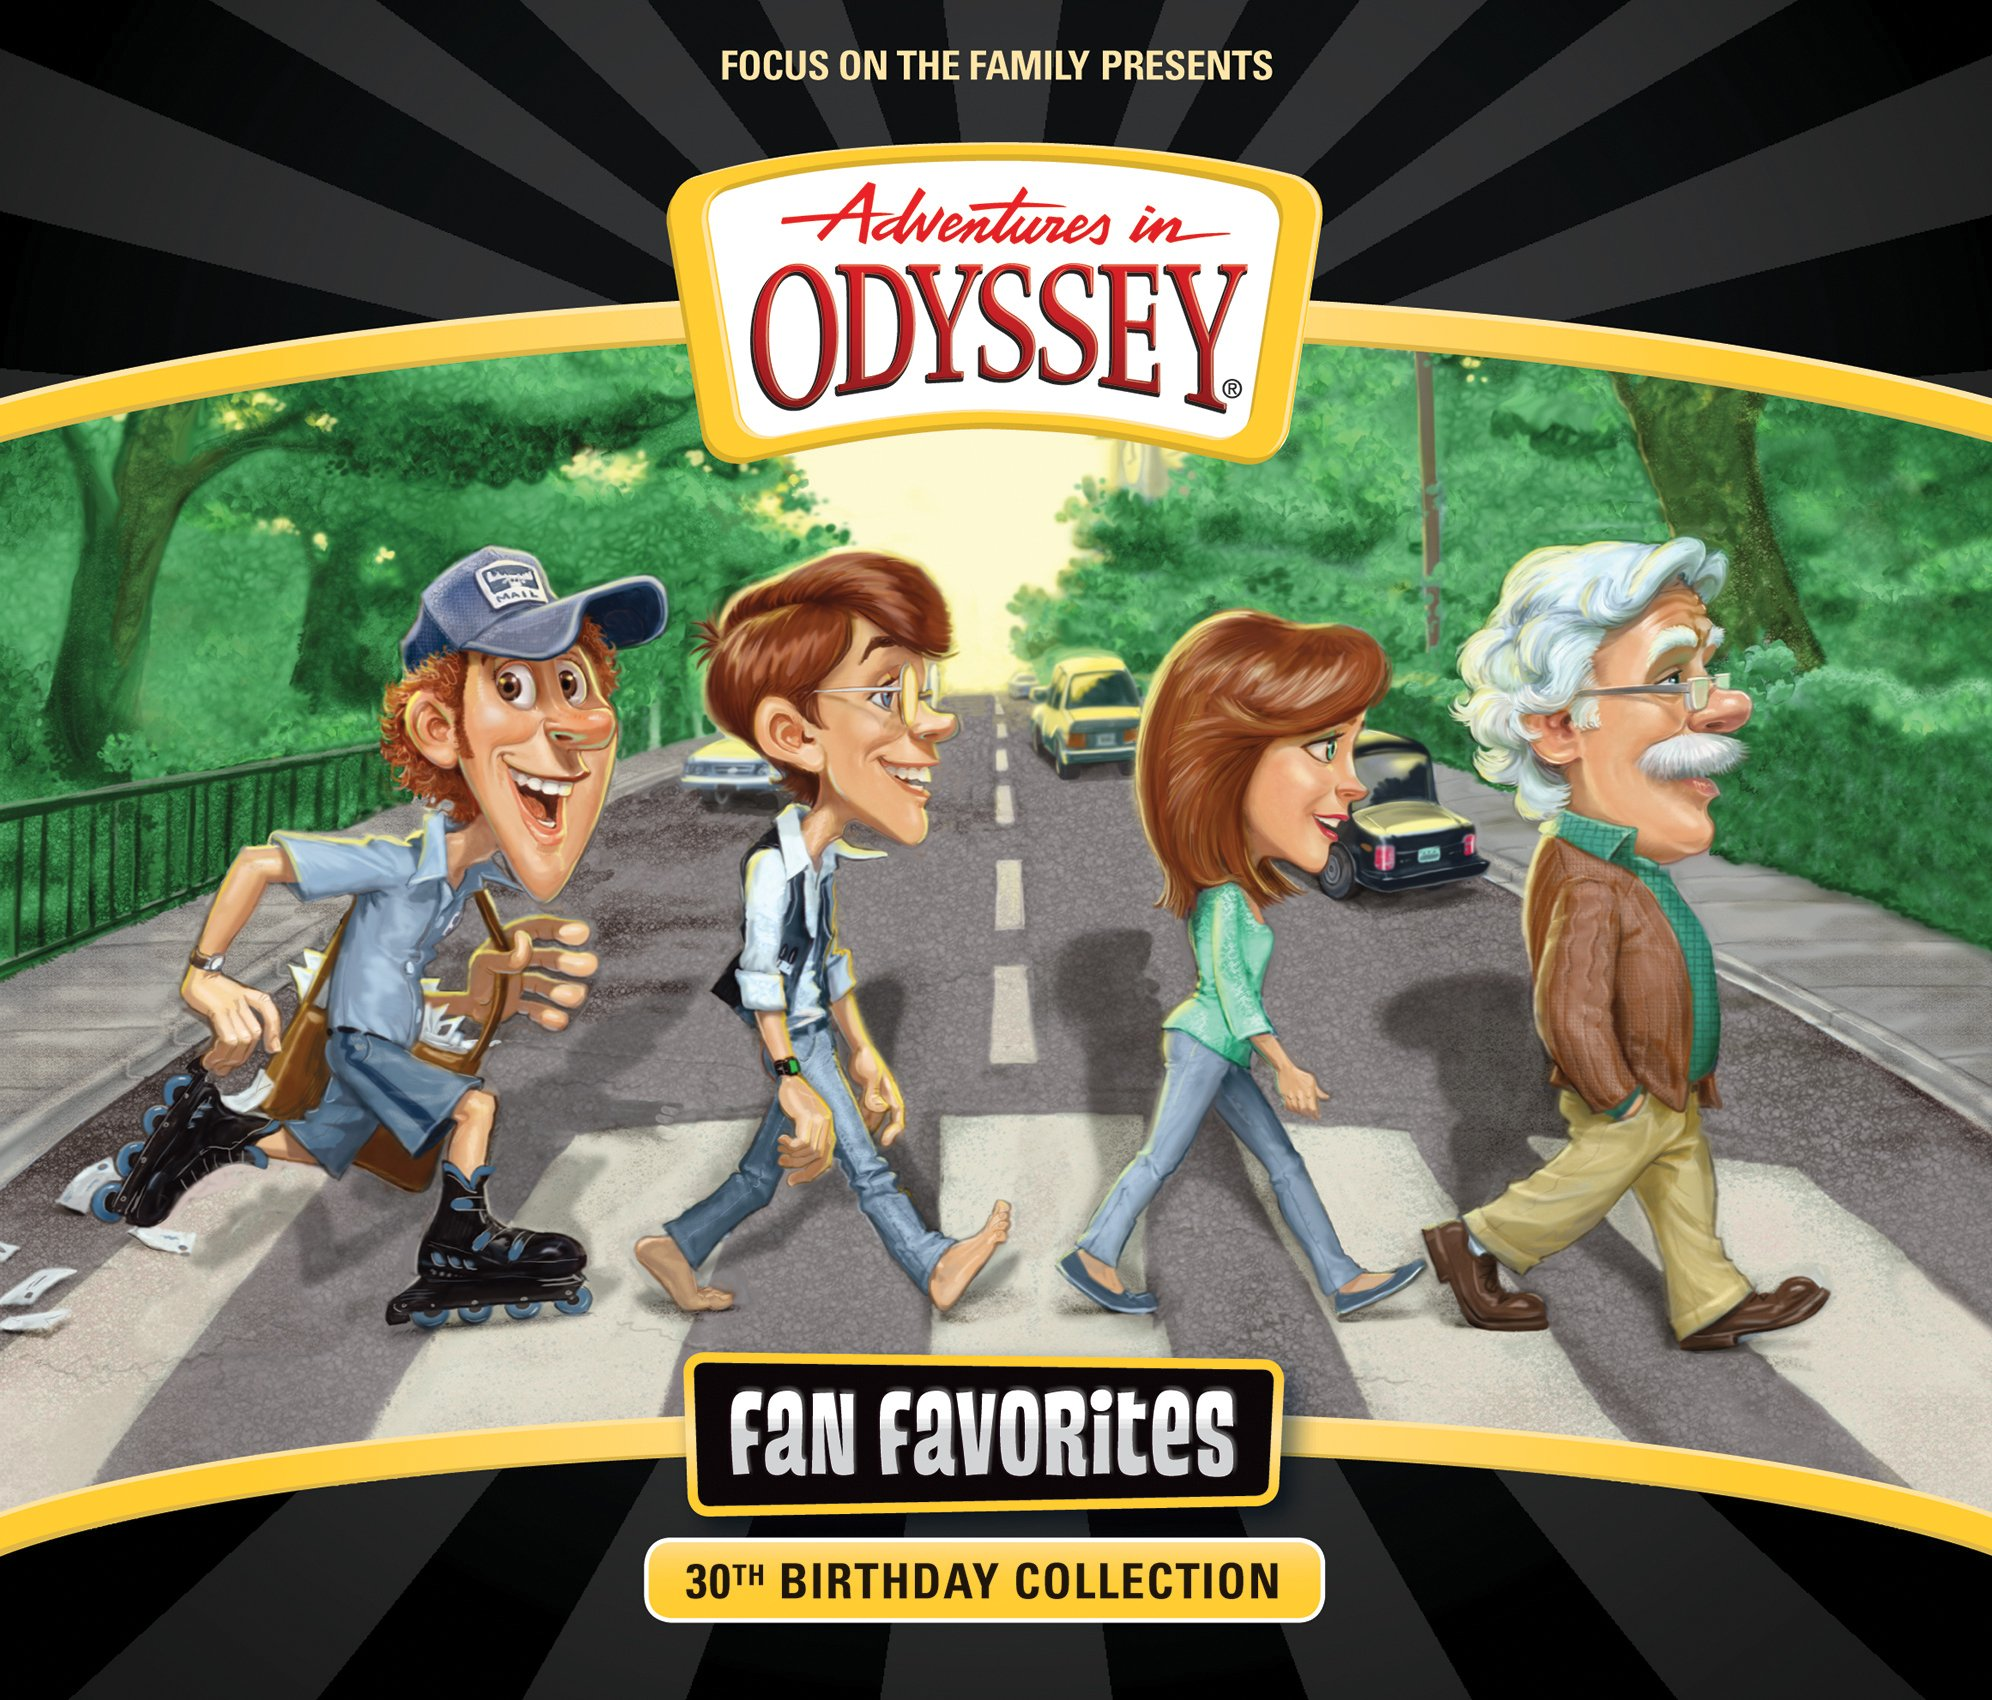 Fan Favorites (Adventures in Odyssey) by Tyndale House Publishers (Image #1)